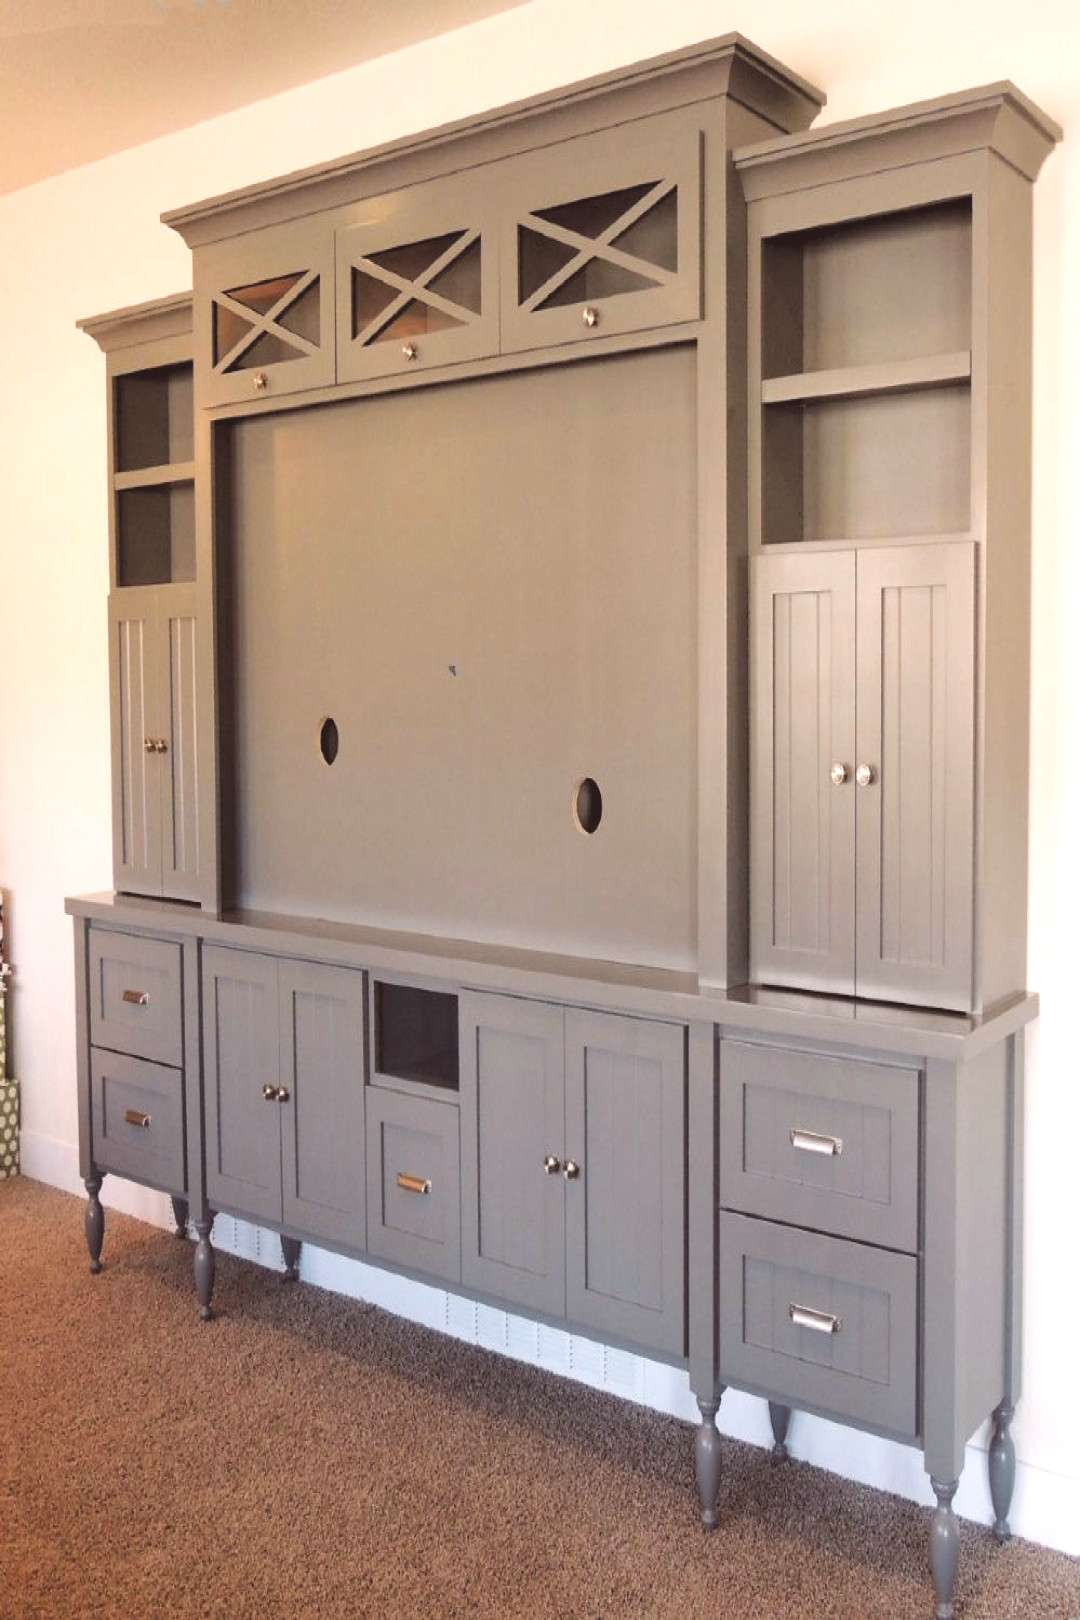 Entertainment Centers and Media Consoles are the most popular items we build. Qu... - -